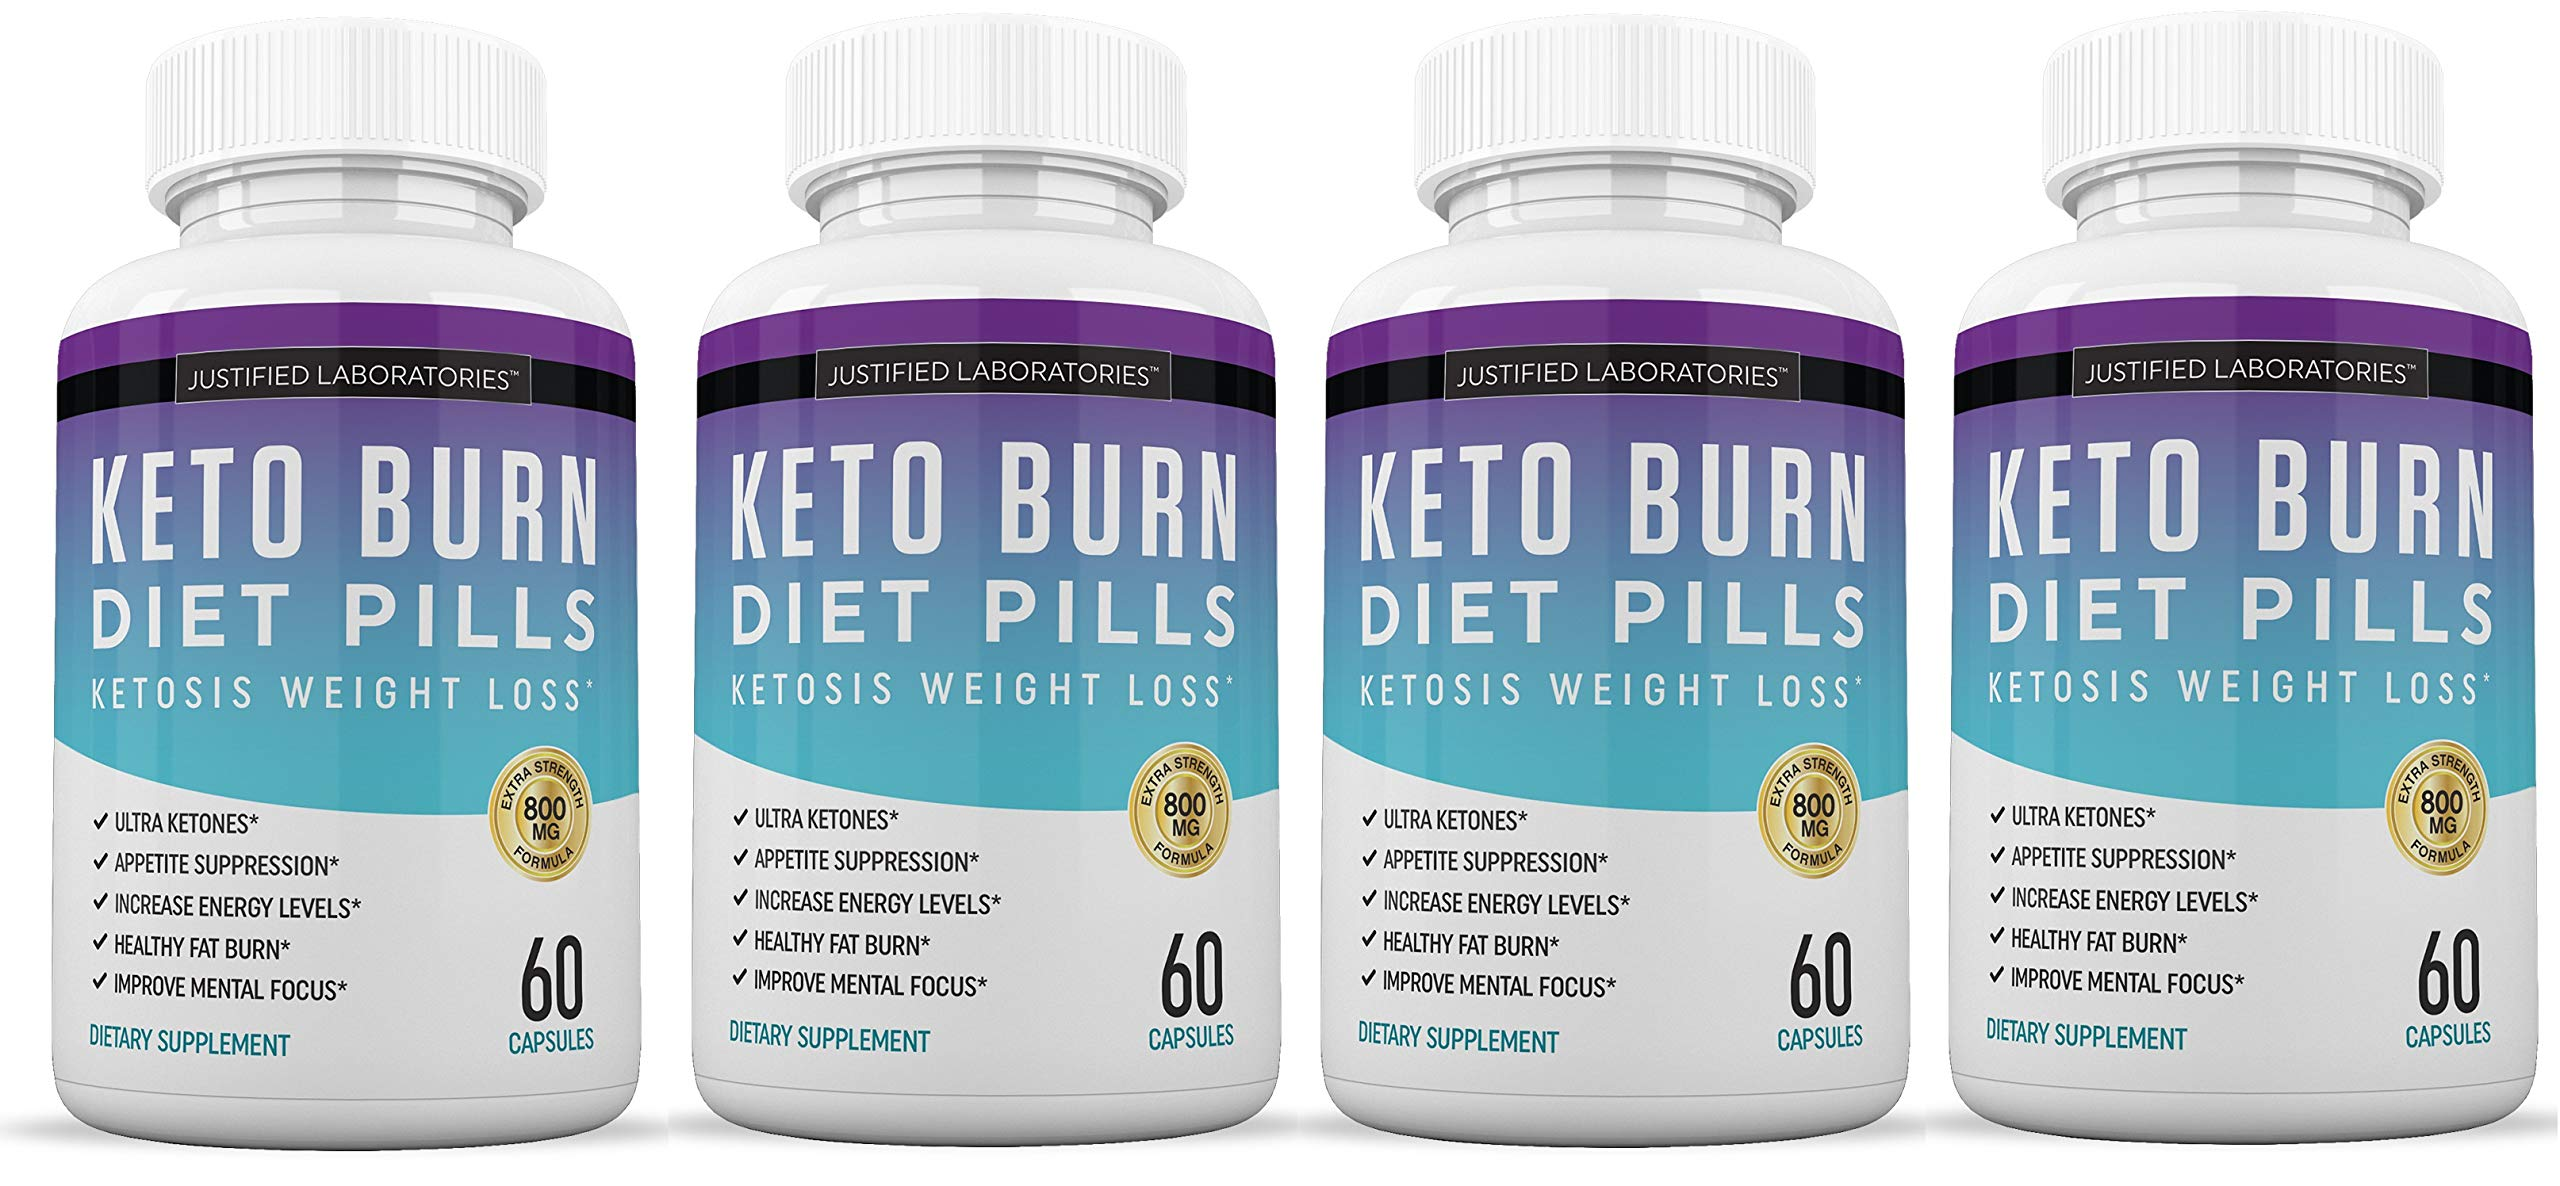 Keto Diet Pills Burn Shred BHB Salts Advanced Ketogenic Supplement Exogenous Ketones Ketosis Weight Loss Fat Burner Boost Energy Metabolism Men Women 60 Capsules 4 Bottles by Justified Laboratories